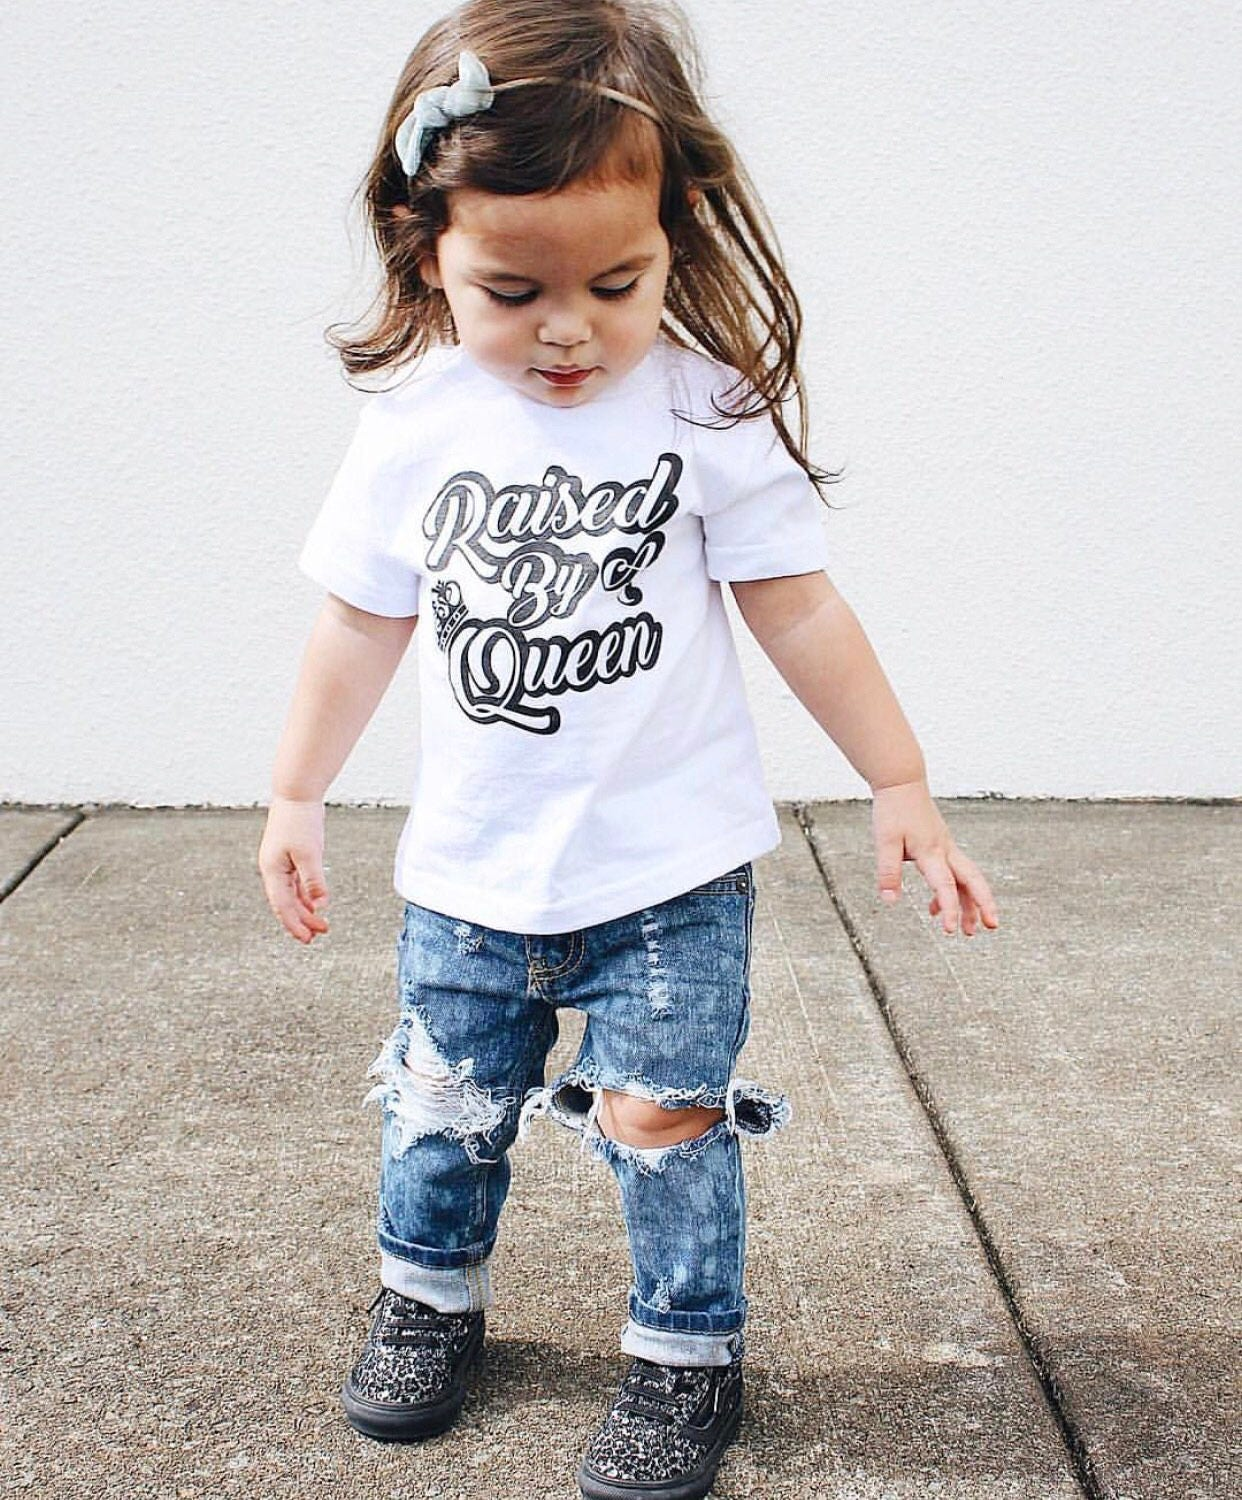 9ba96b587 SABBATHS baby boy girl unisex toddler destroyed distressed deconstructed  ripped bleached denim skinny jeans Oshkosh. gallery photo ...